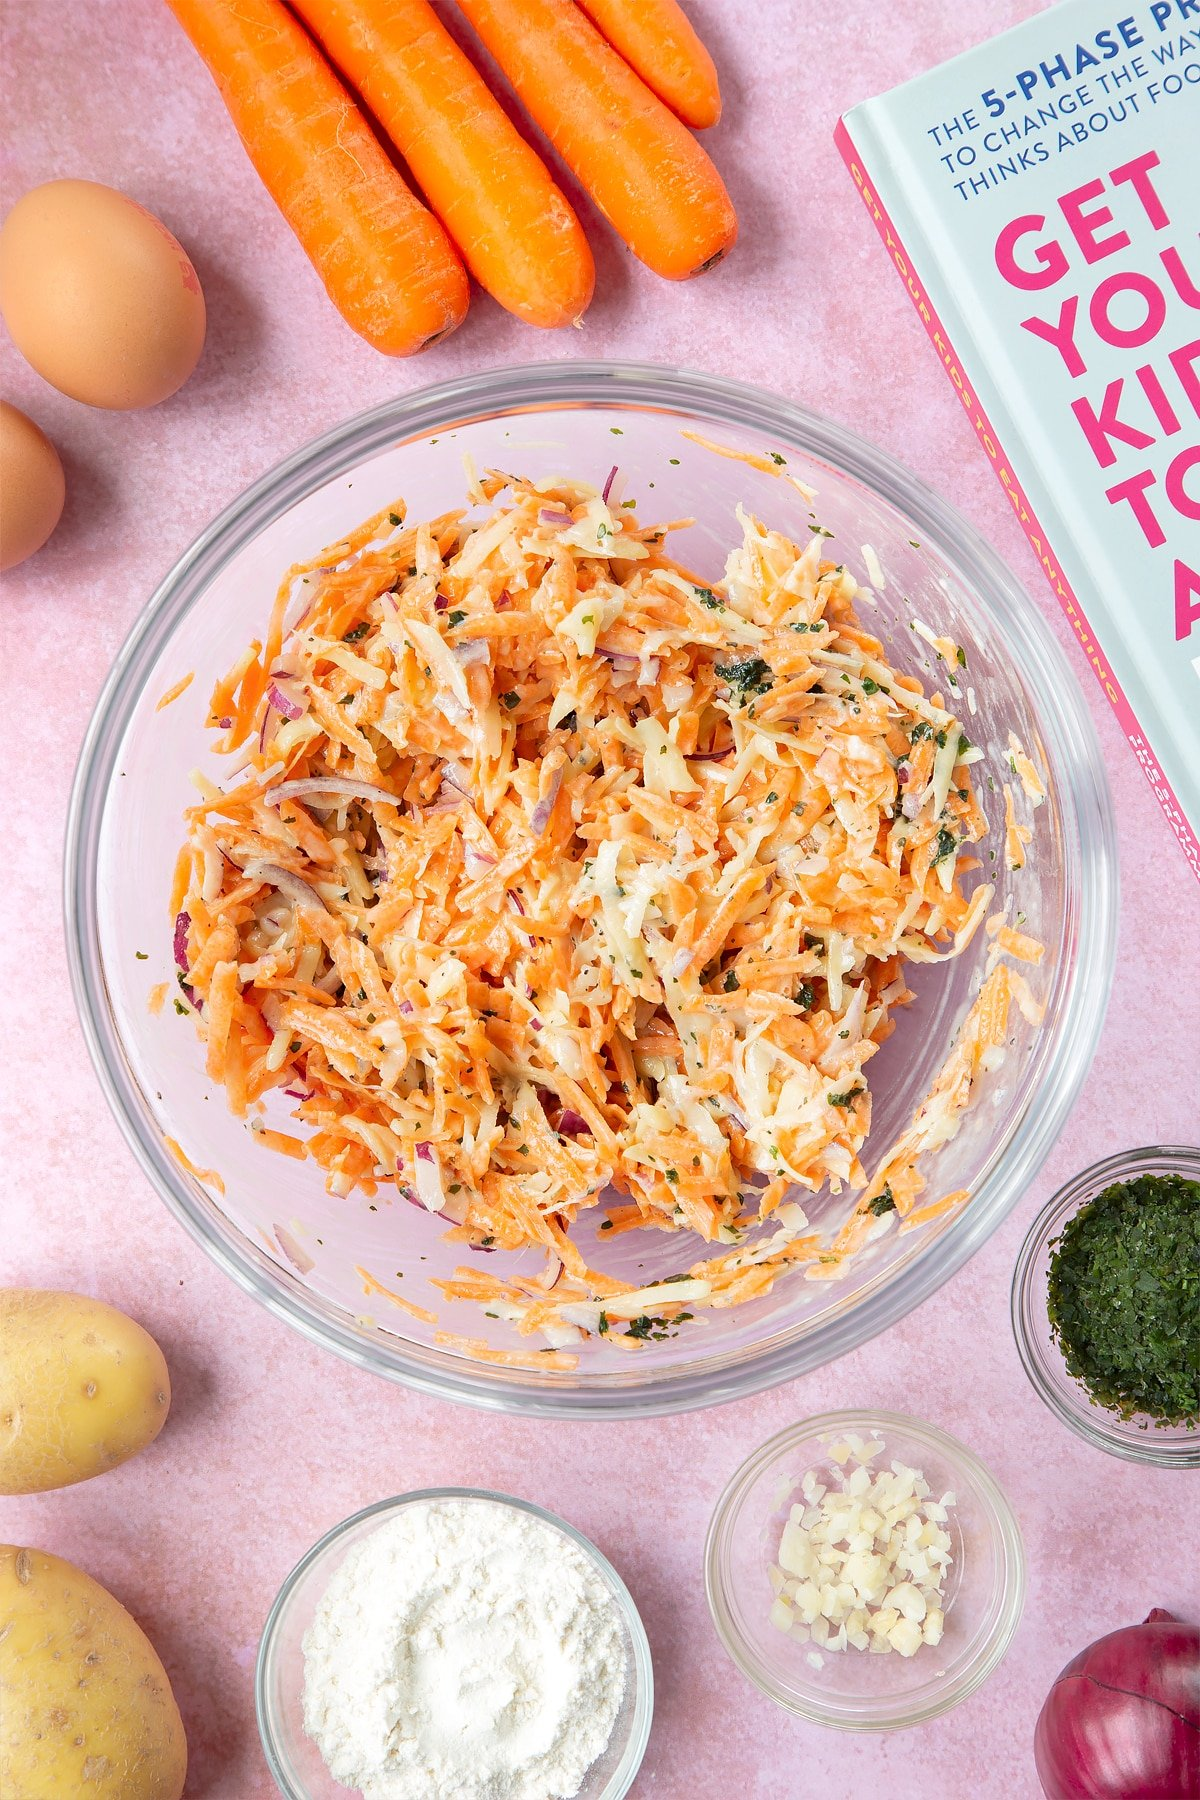 Grated carrot, potato, red onion and coriander in a flour and egg batter in a mixing bowl. The bowl is surrounded by ingredients to make carrot patties.